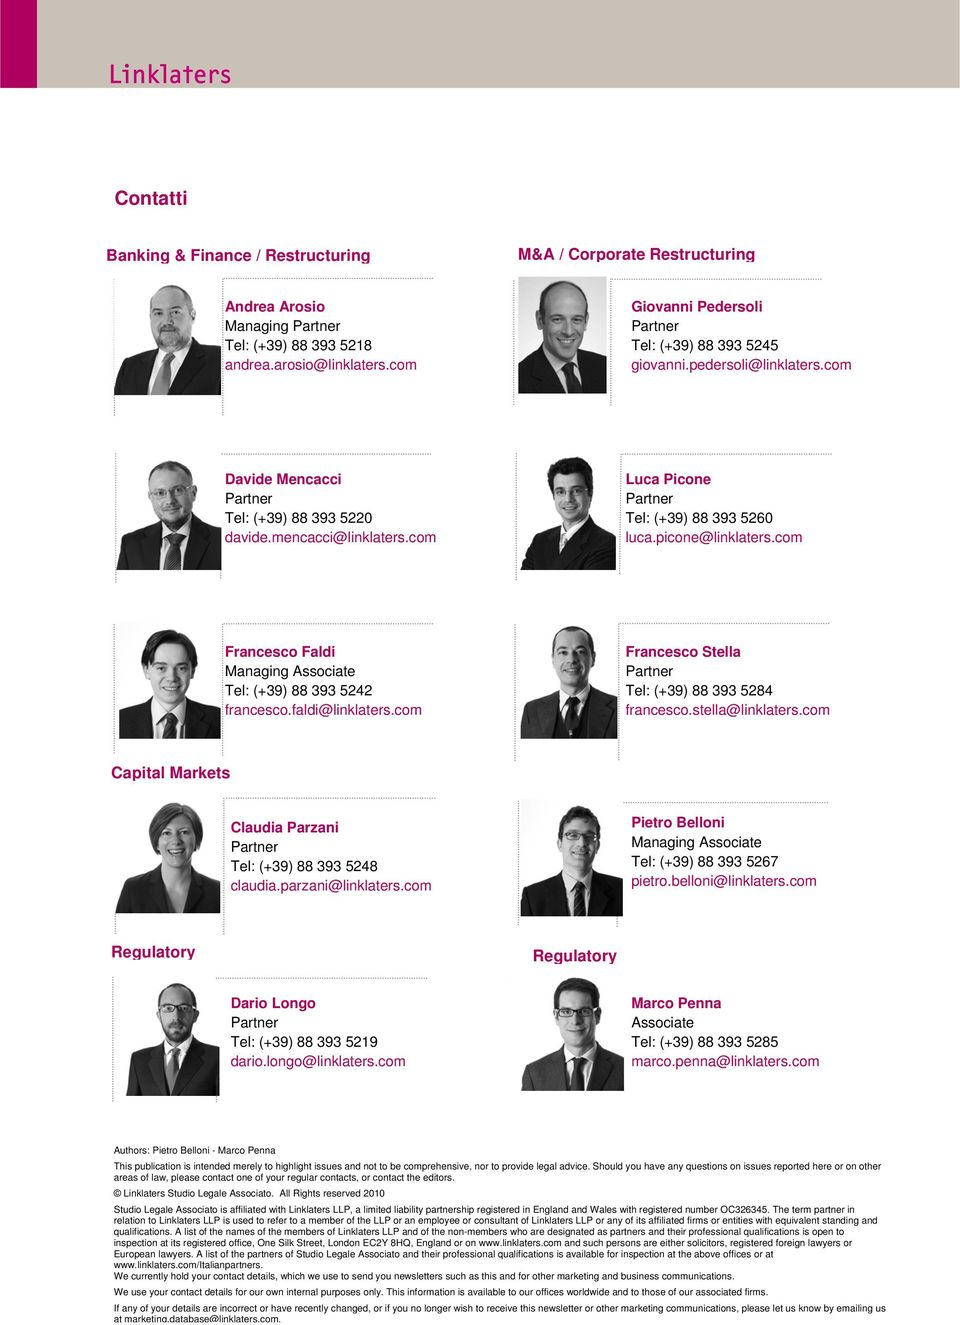 com Francesco Faldi Managing Associate Tel: (+39) 88 393 5242 francesco.faldi@linklaters.com Francesco Stella Tel: (+39) 88 393 5284 francesco.stella@linklaters.